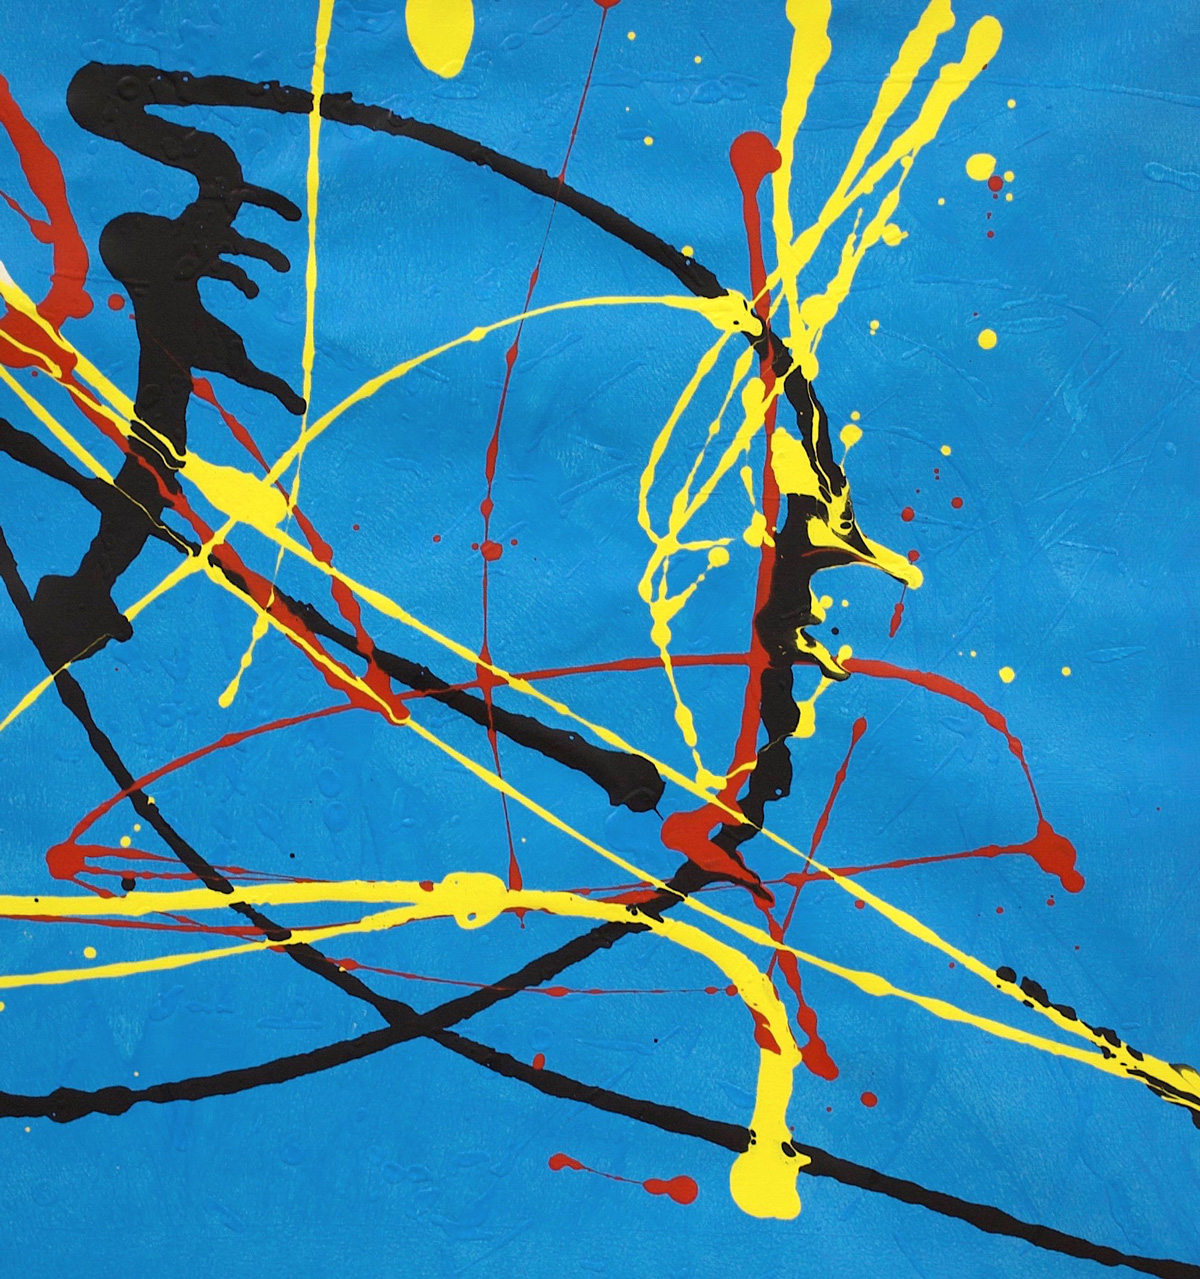 Painting: Red, black and yellow splatter on a blue background.